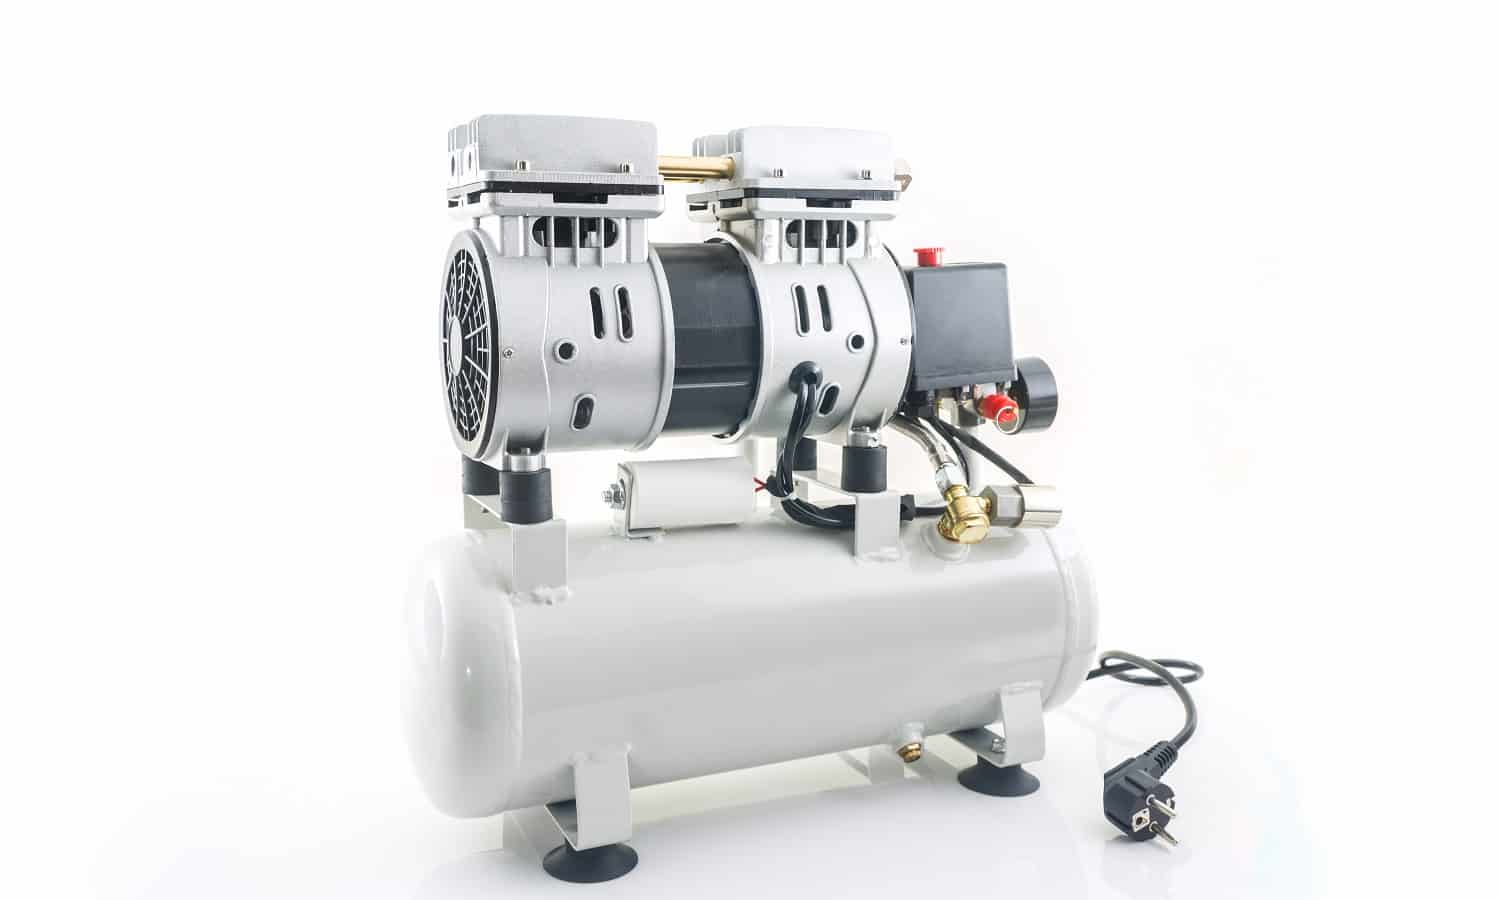 Air compressor on the white background.